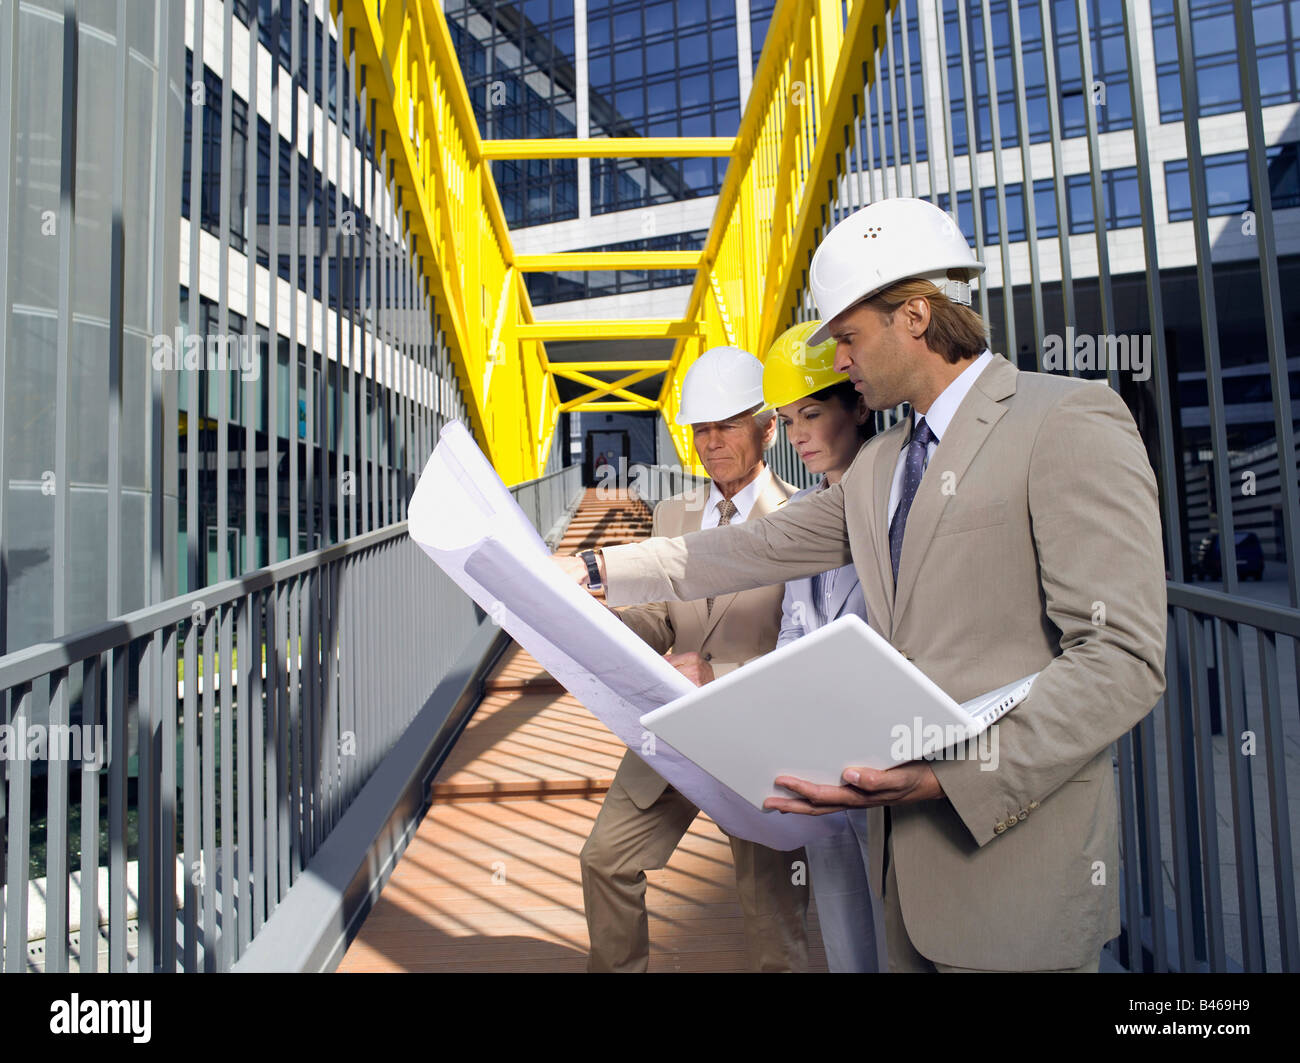 Germany, Baden Württemberg, Stuttgart, Men and woman in hard hats looking at blueprints - Stock Image